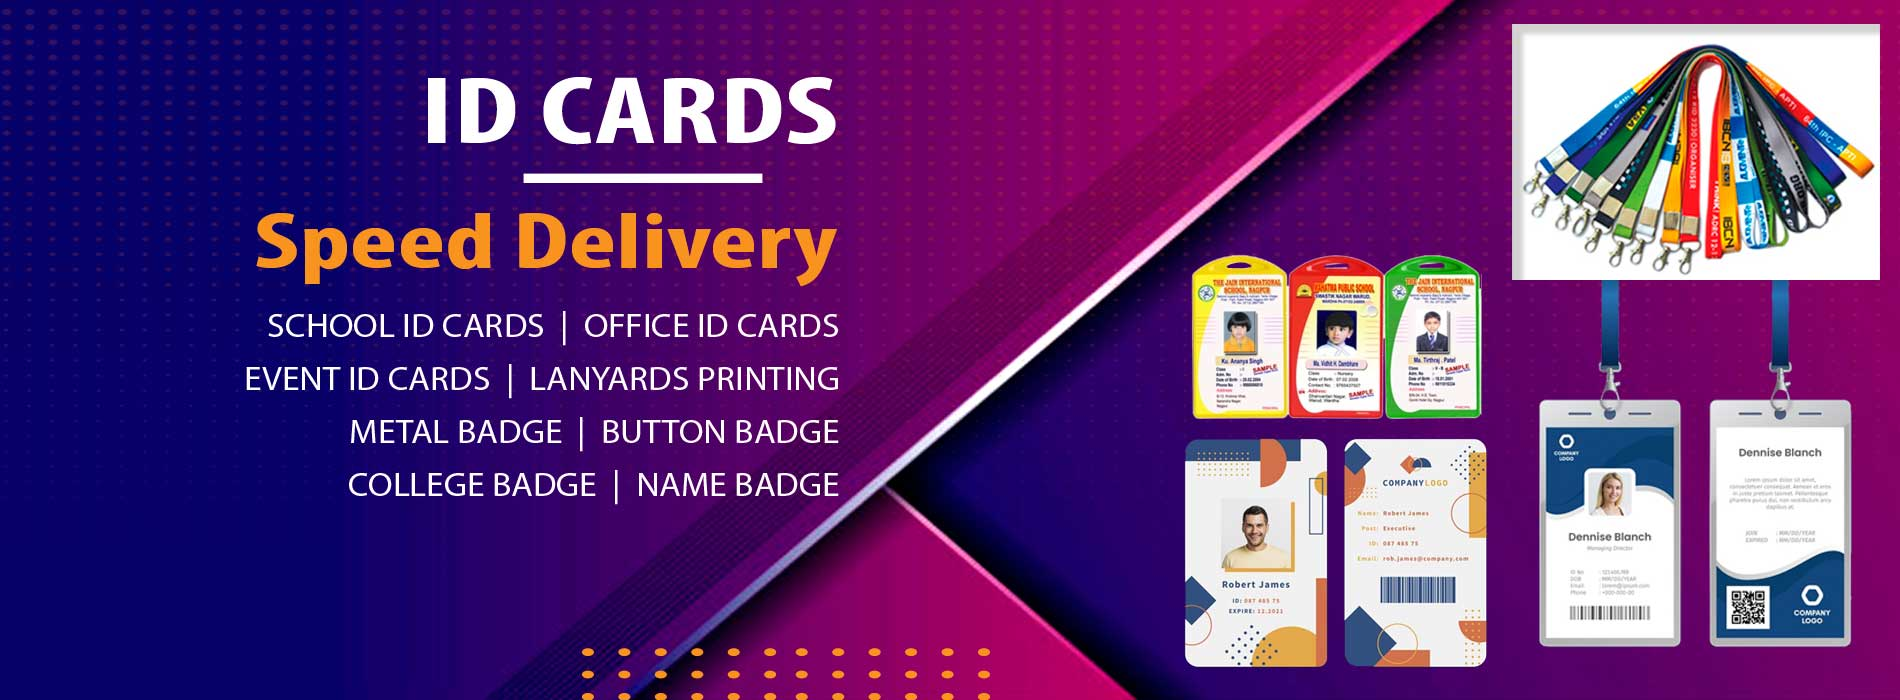 5 ID Cards & Lanyards